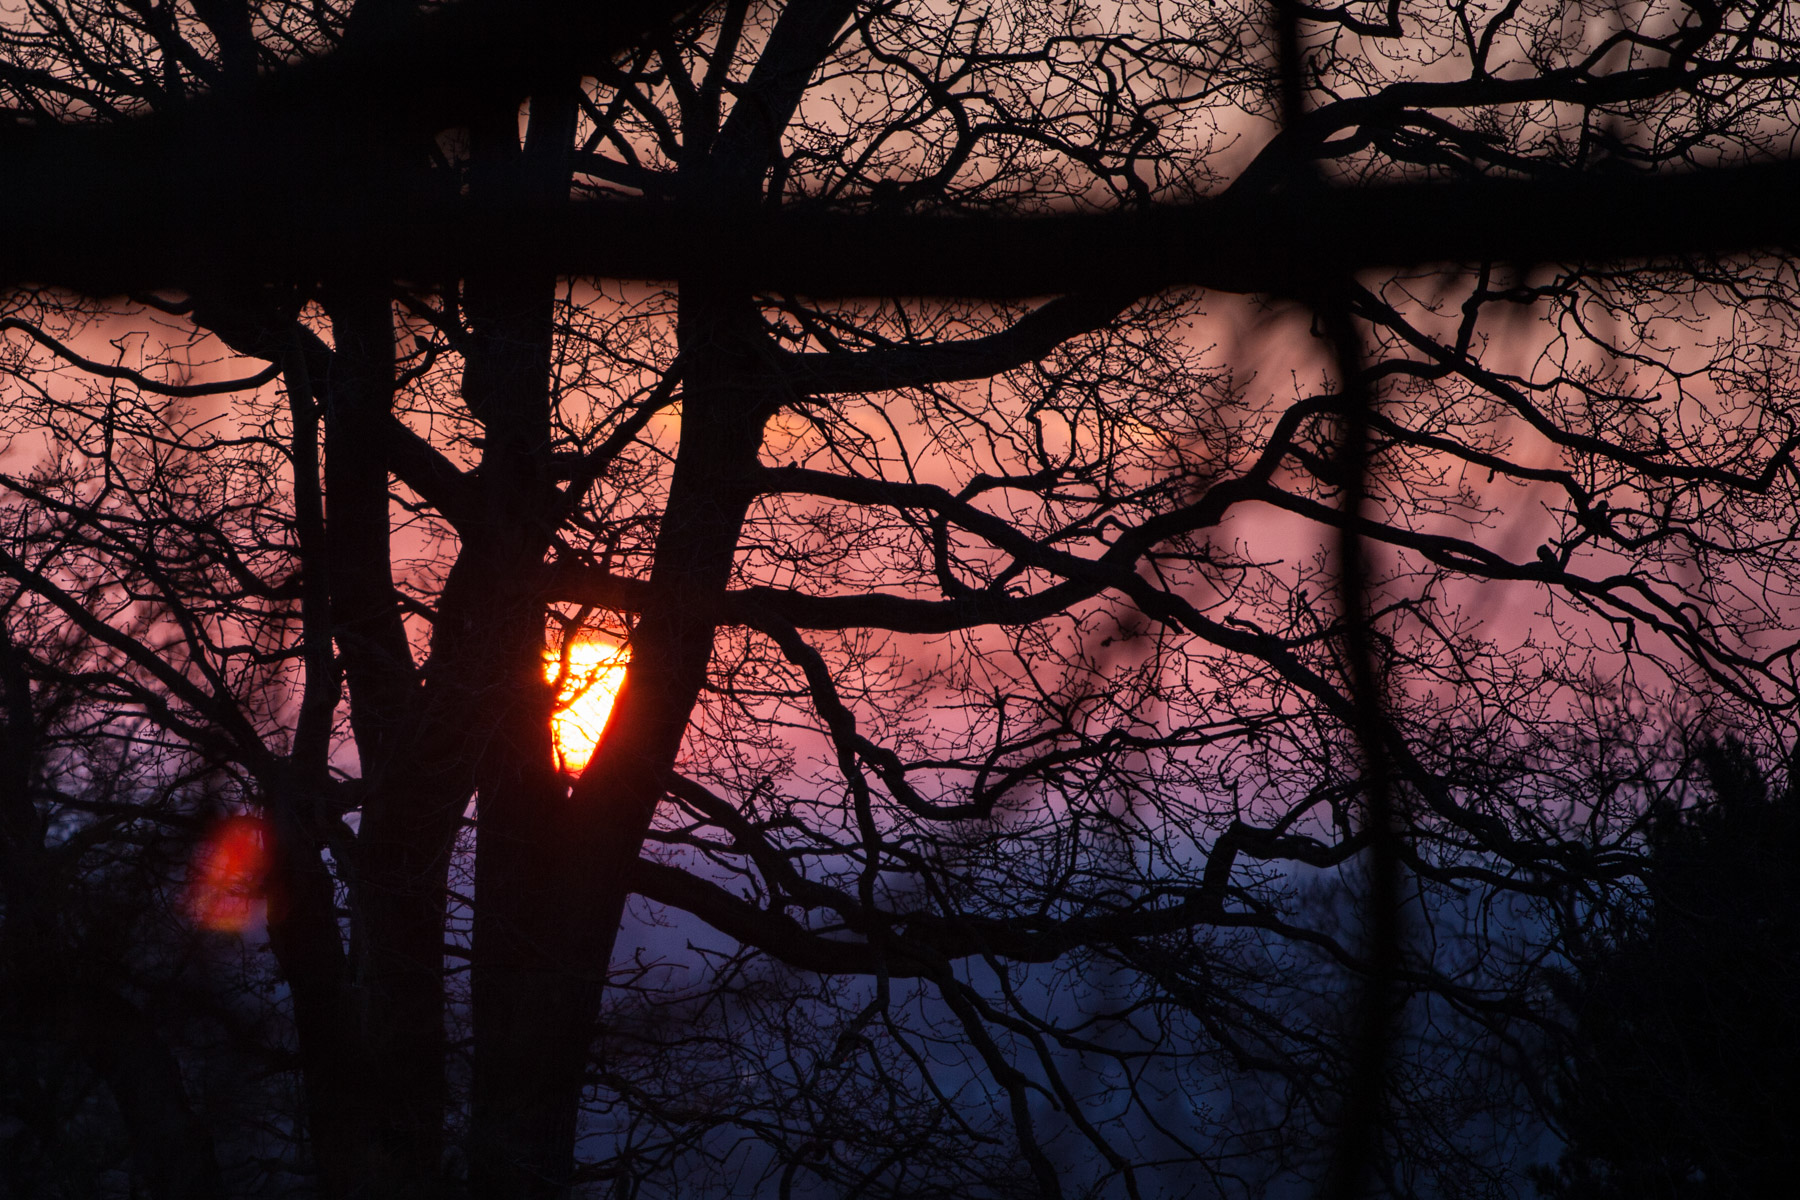 Sunset looking through silhouetted trees in Richmond Park, England.